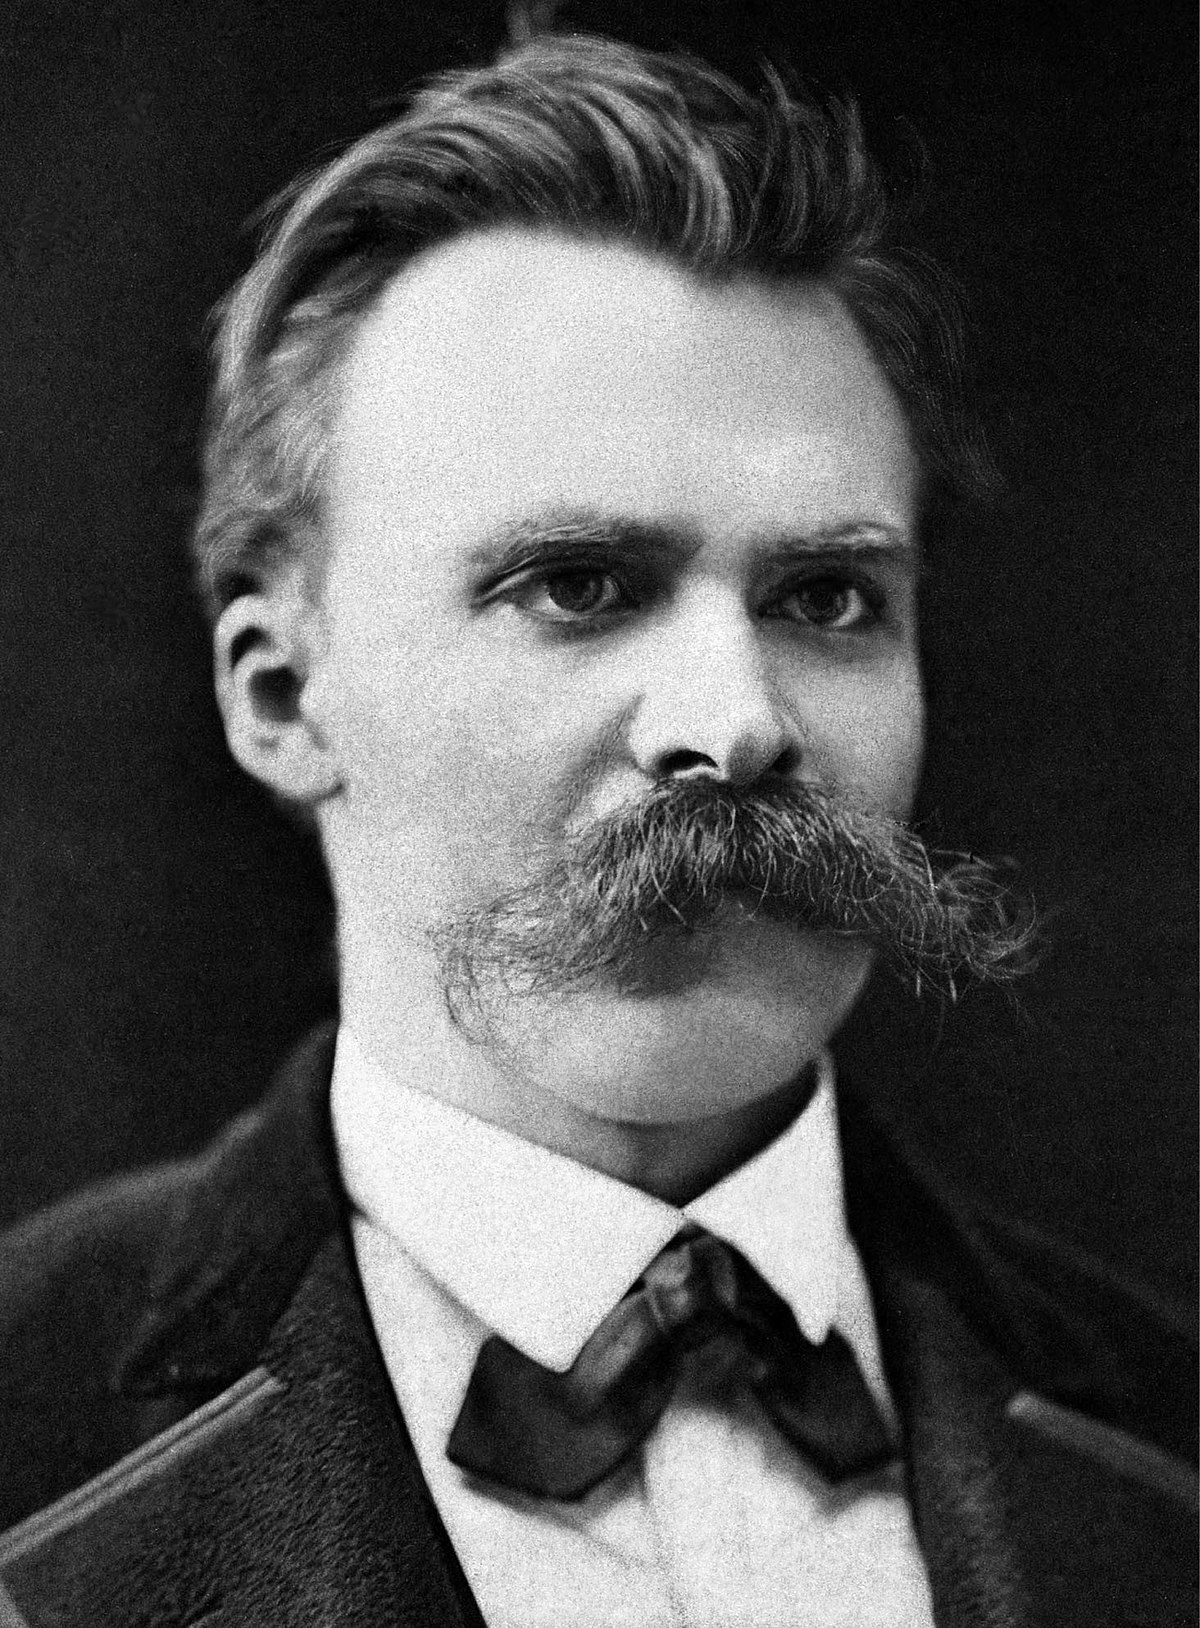 nietzsche abyss quote meaning